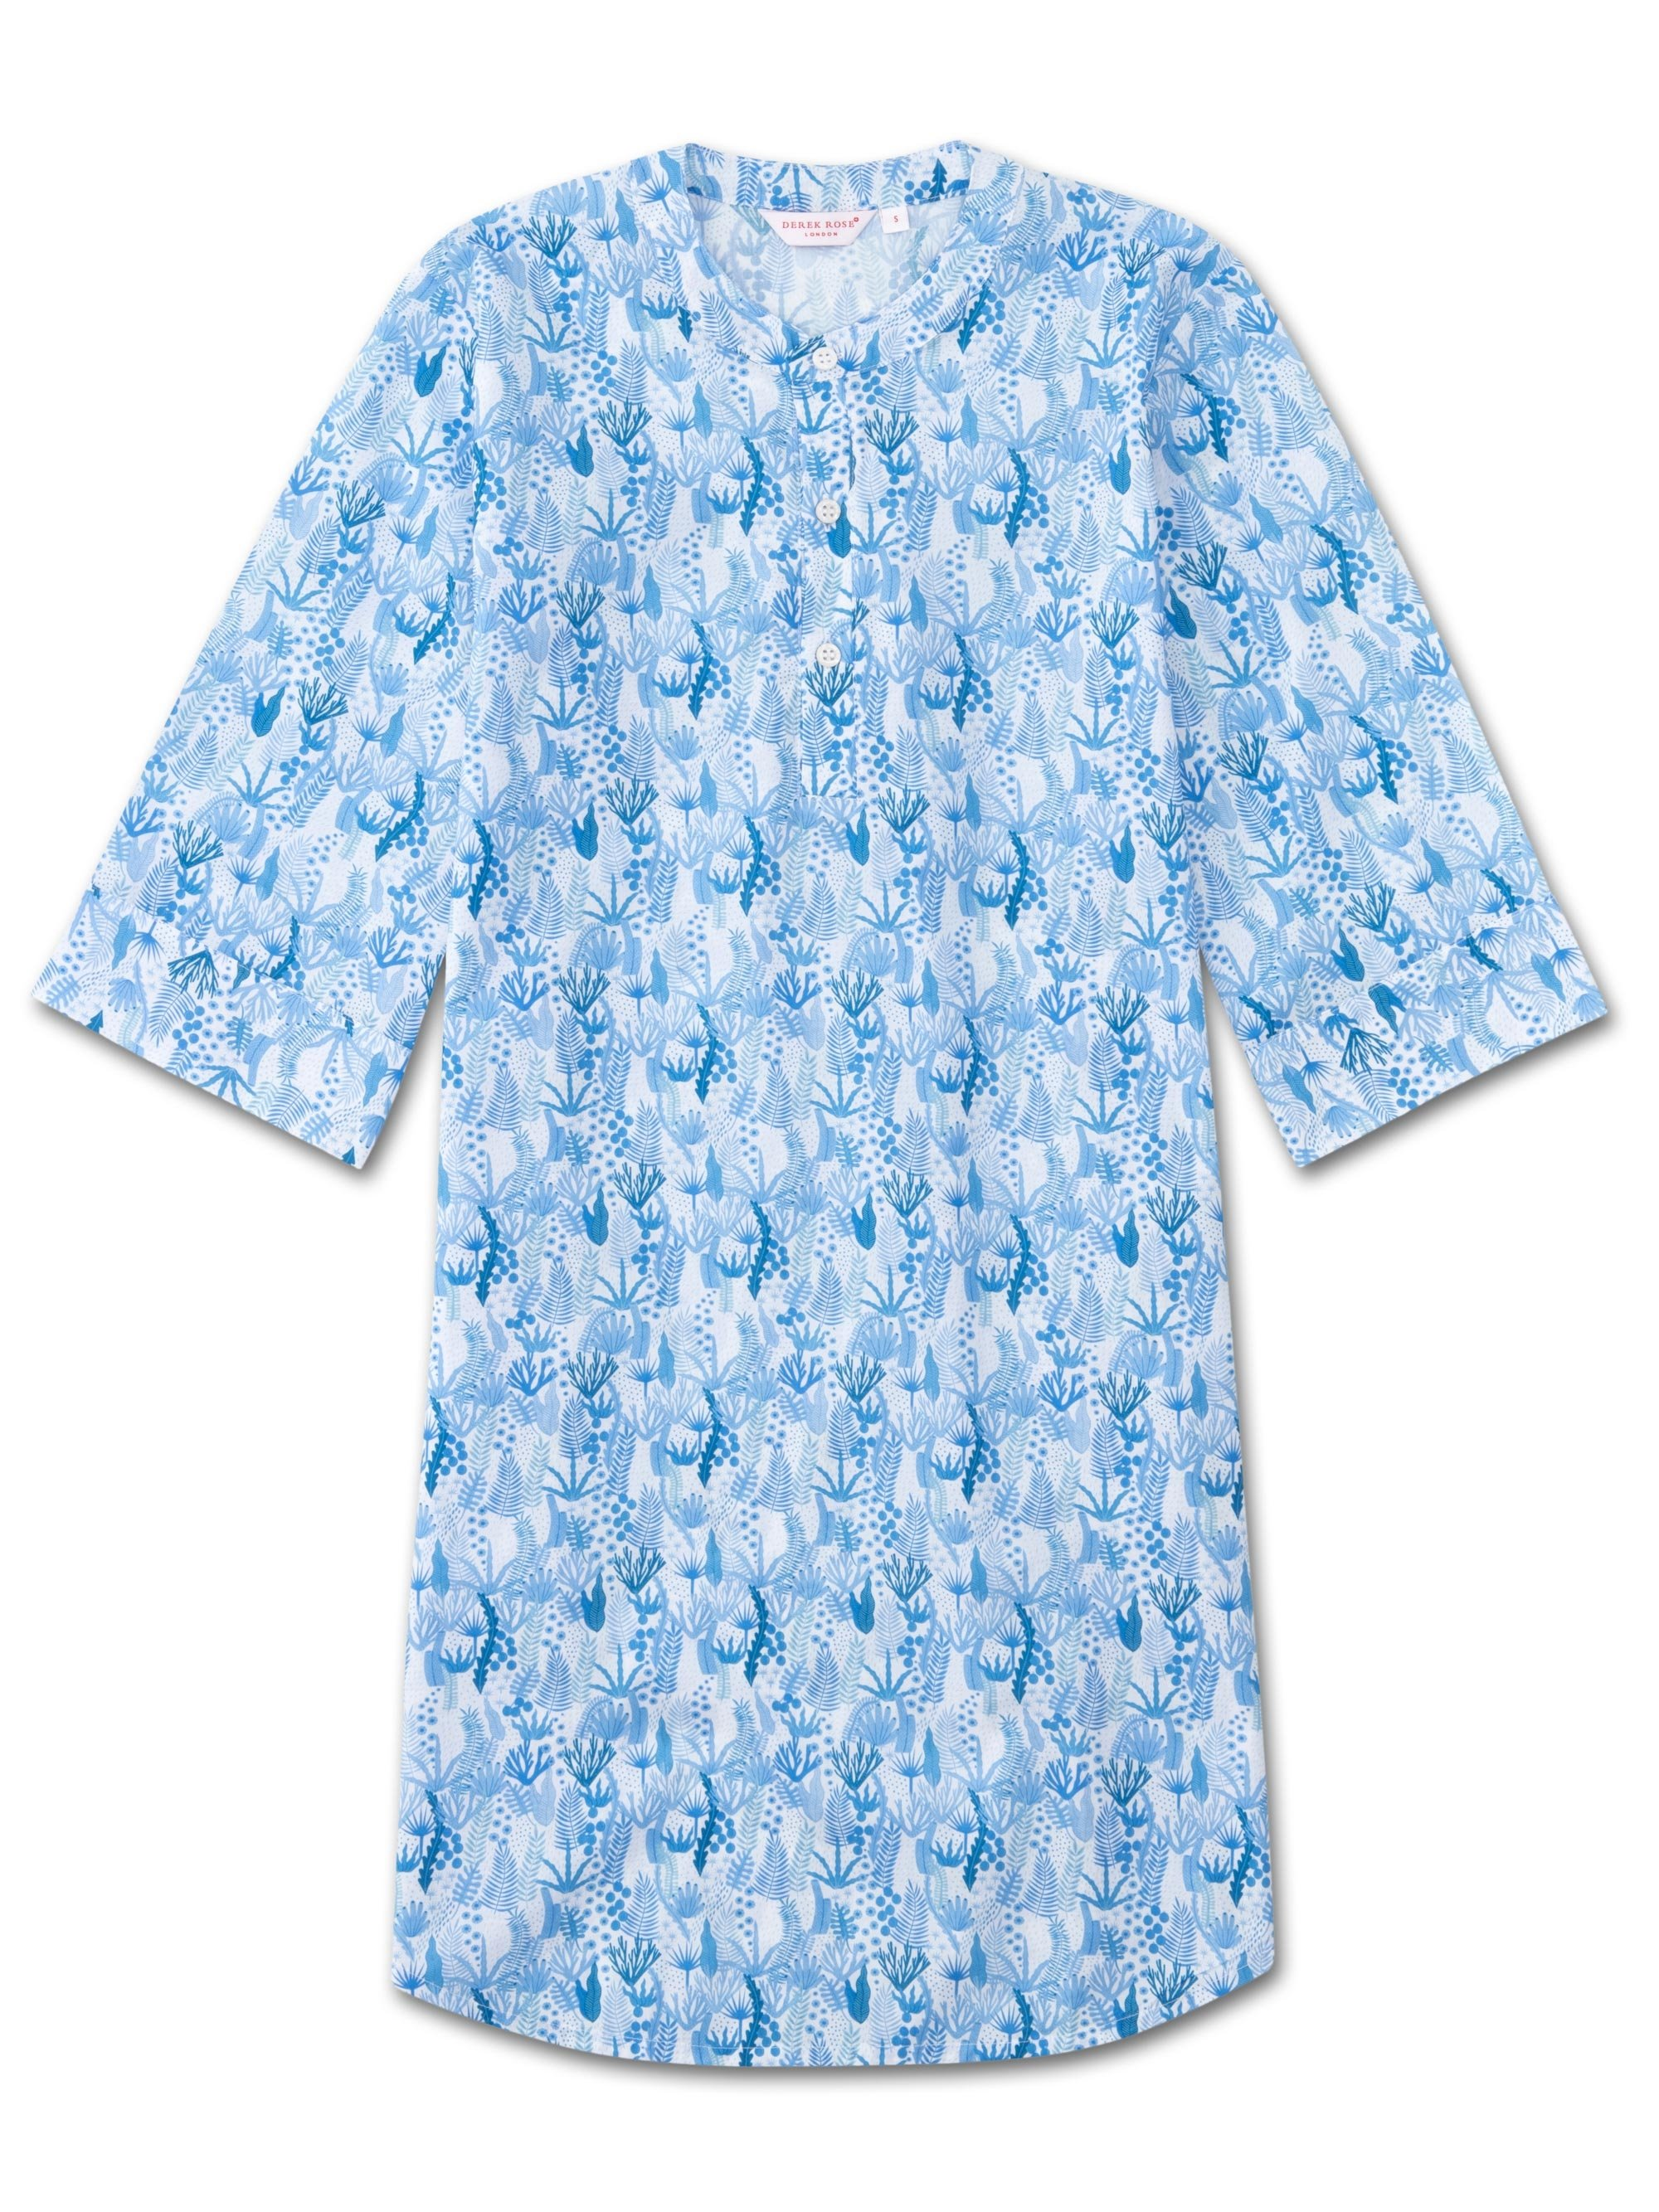 Women's Kaftan Nightshirt Ledbury 23 Cotton Batiste Blue